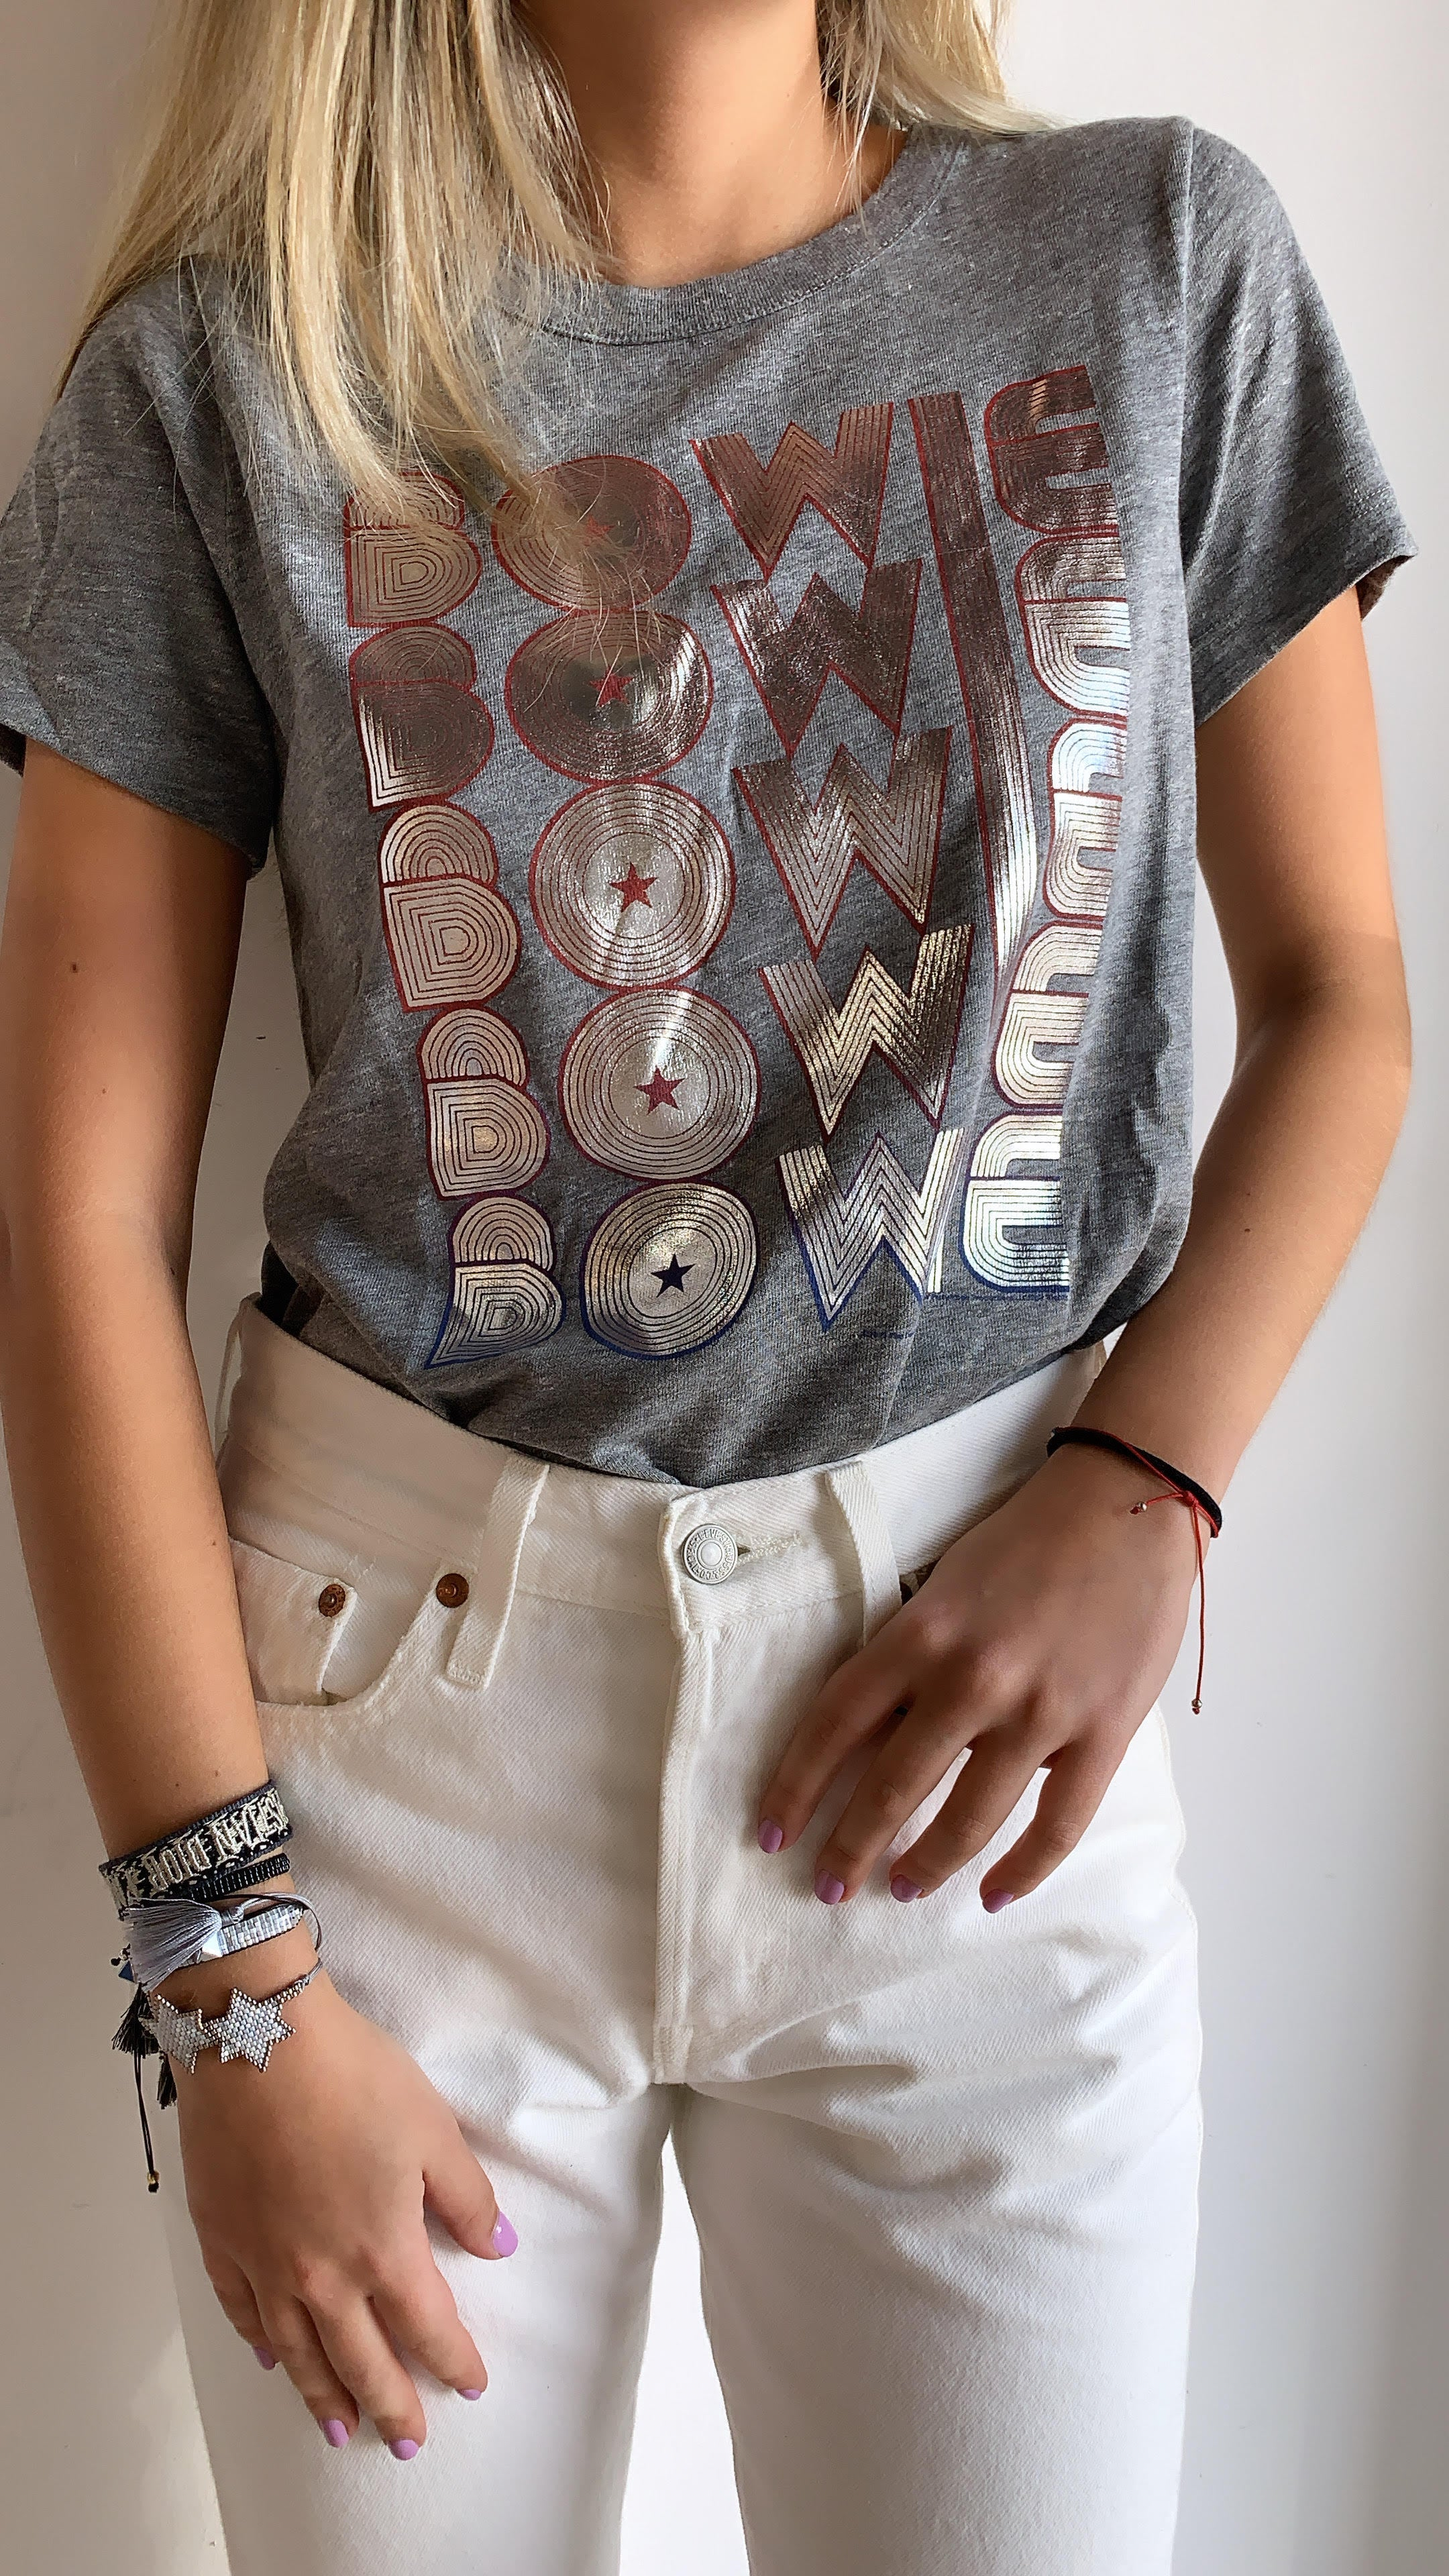 DAVID BOWIE CROP TEE